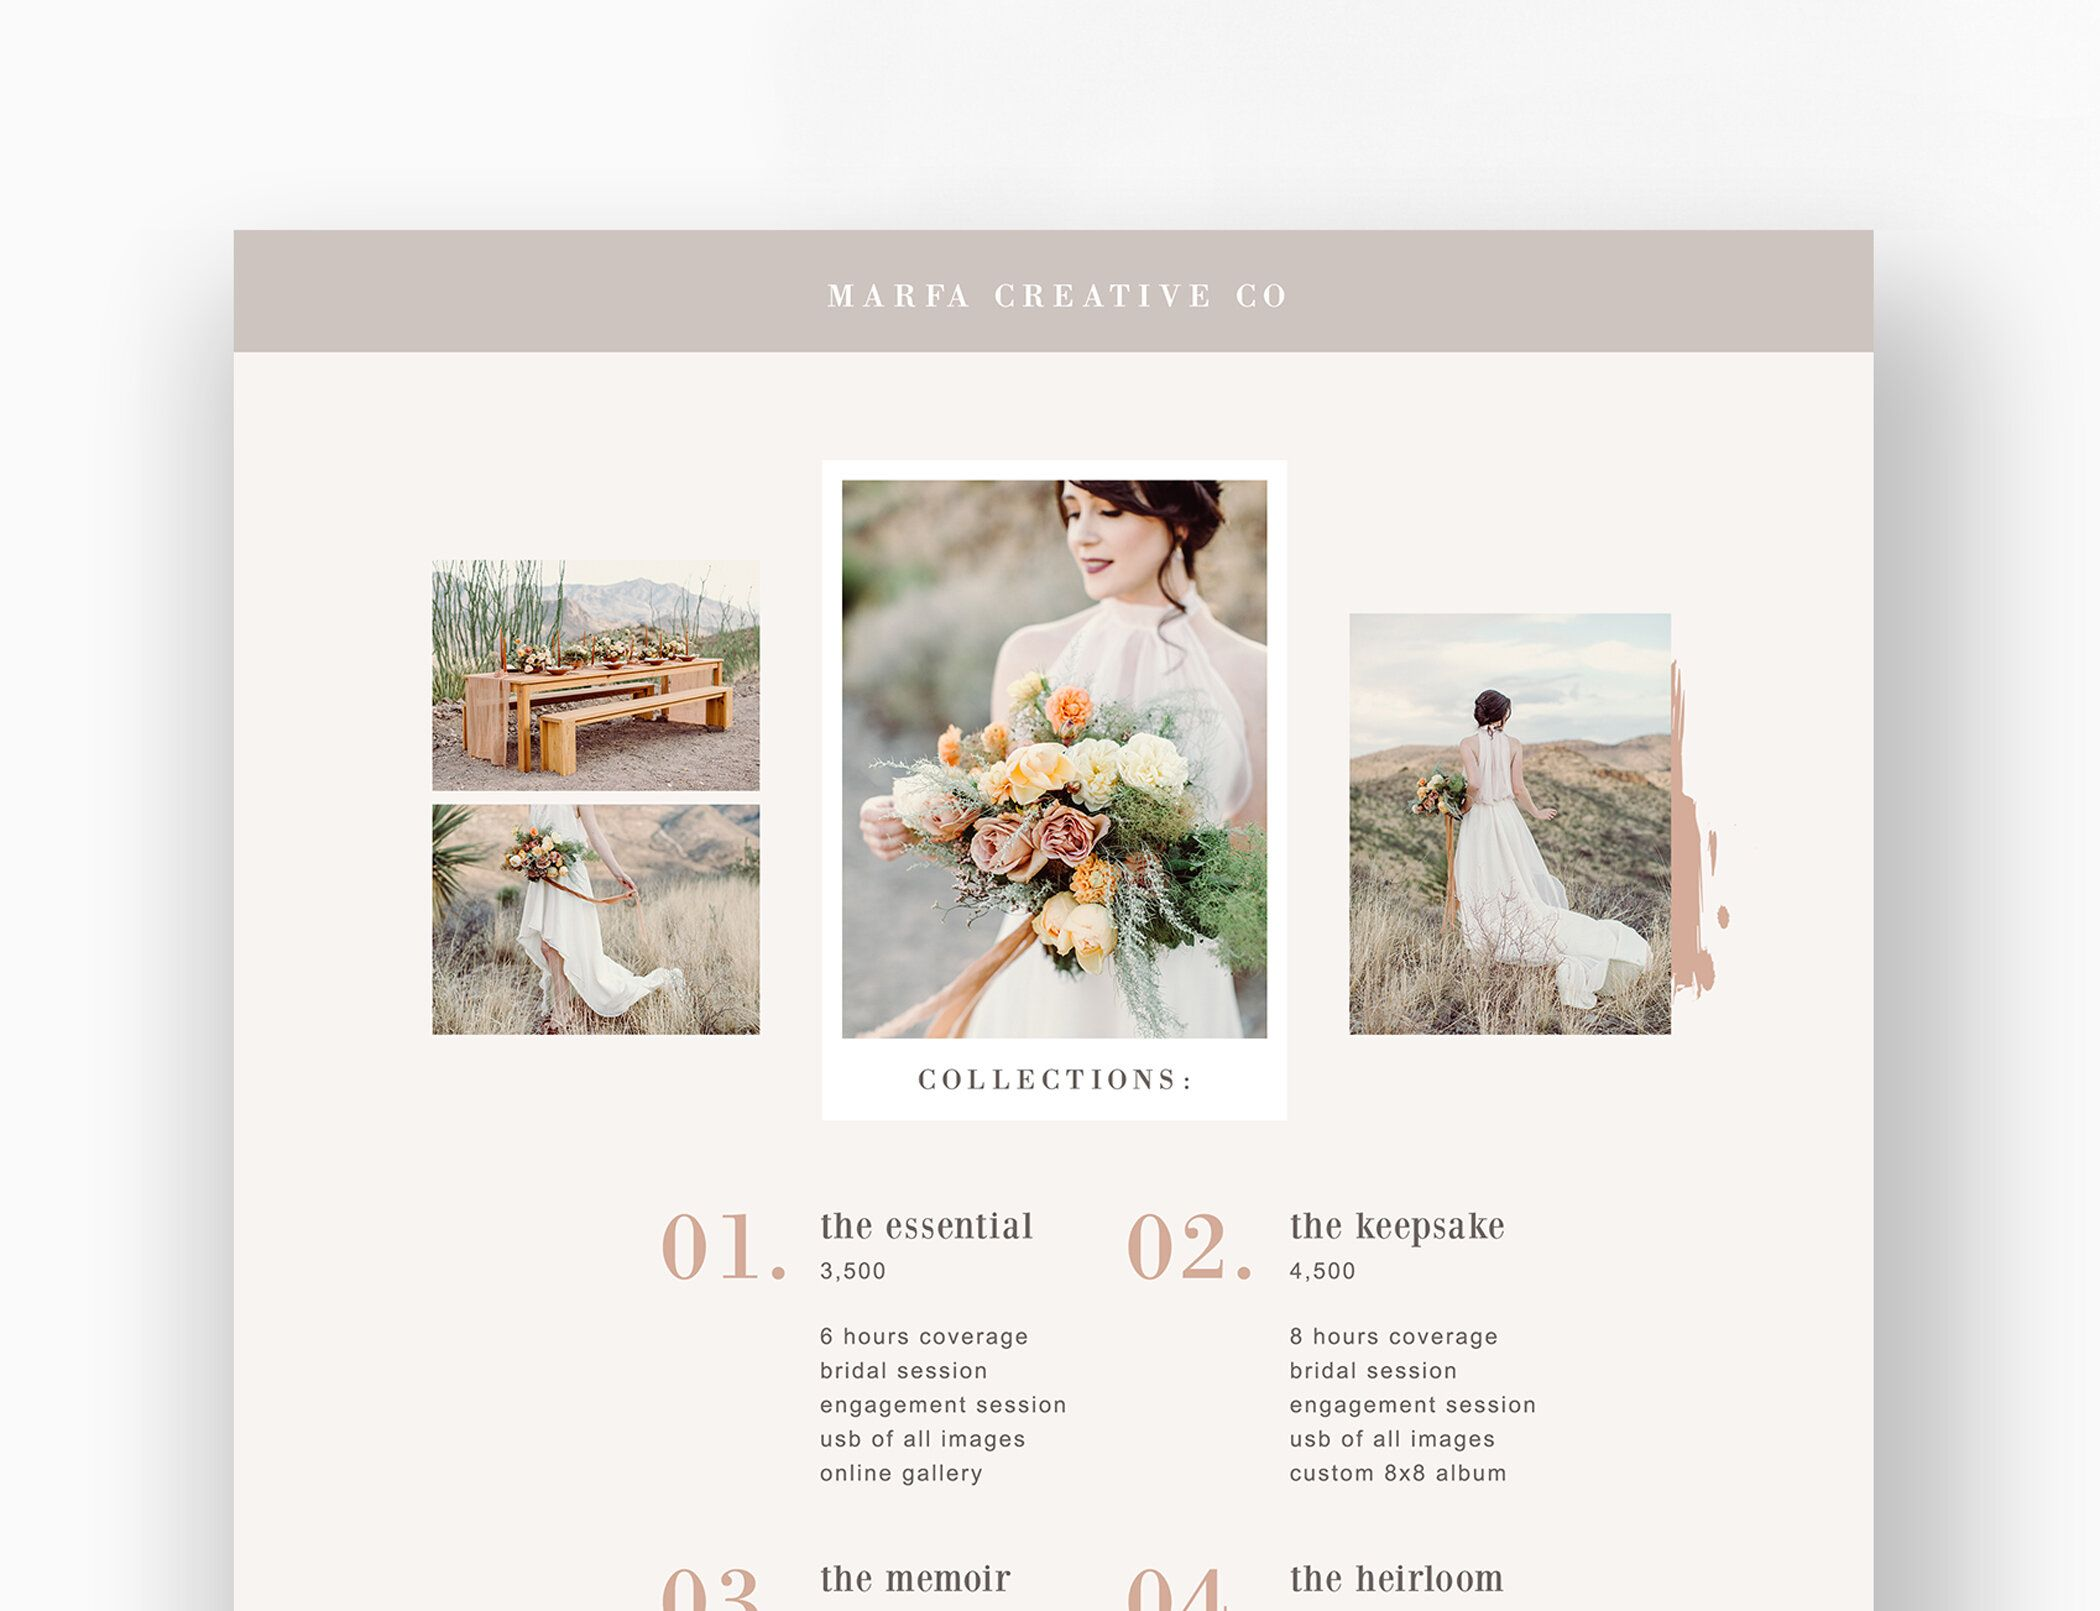 Wedding Photography Pricing Template Boho Style Wedding Photographer Price List Design For Photoshop In 2020 Photographer Prices Photography Pricing Template Wedding Photography Pricing